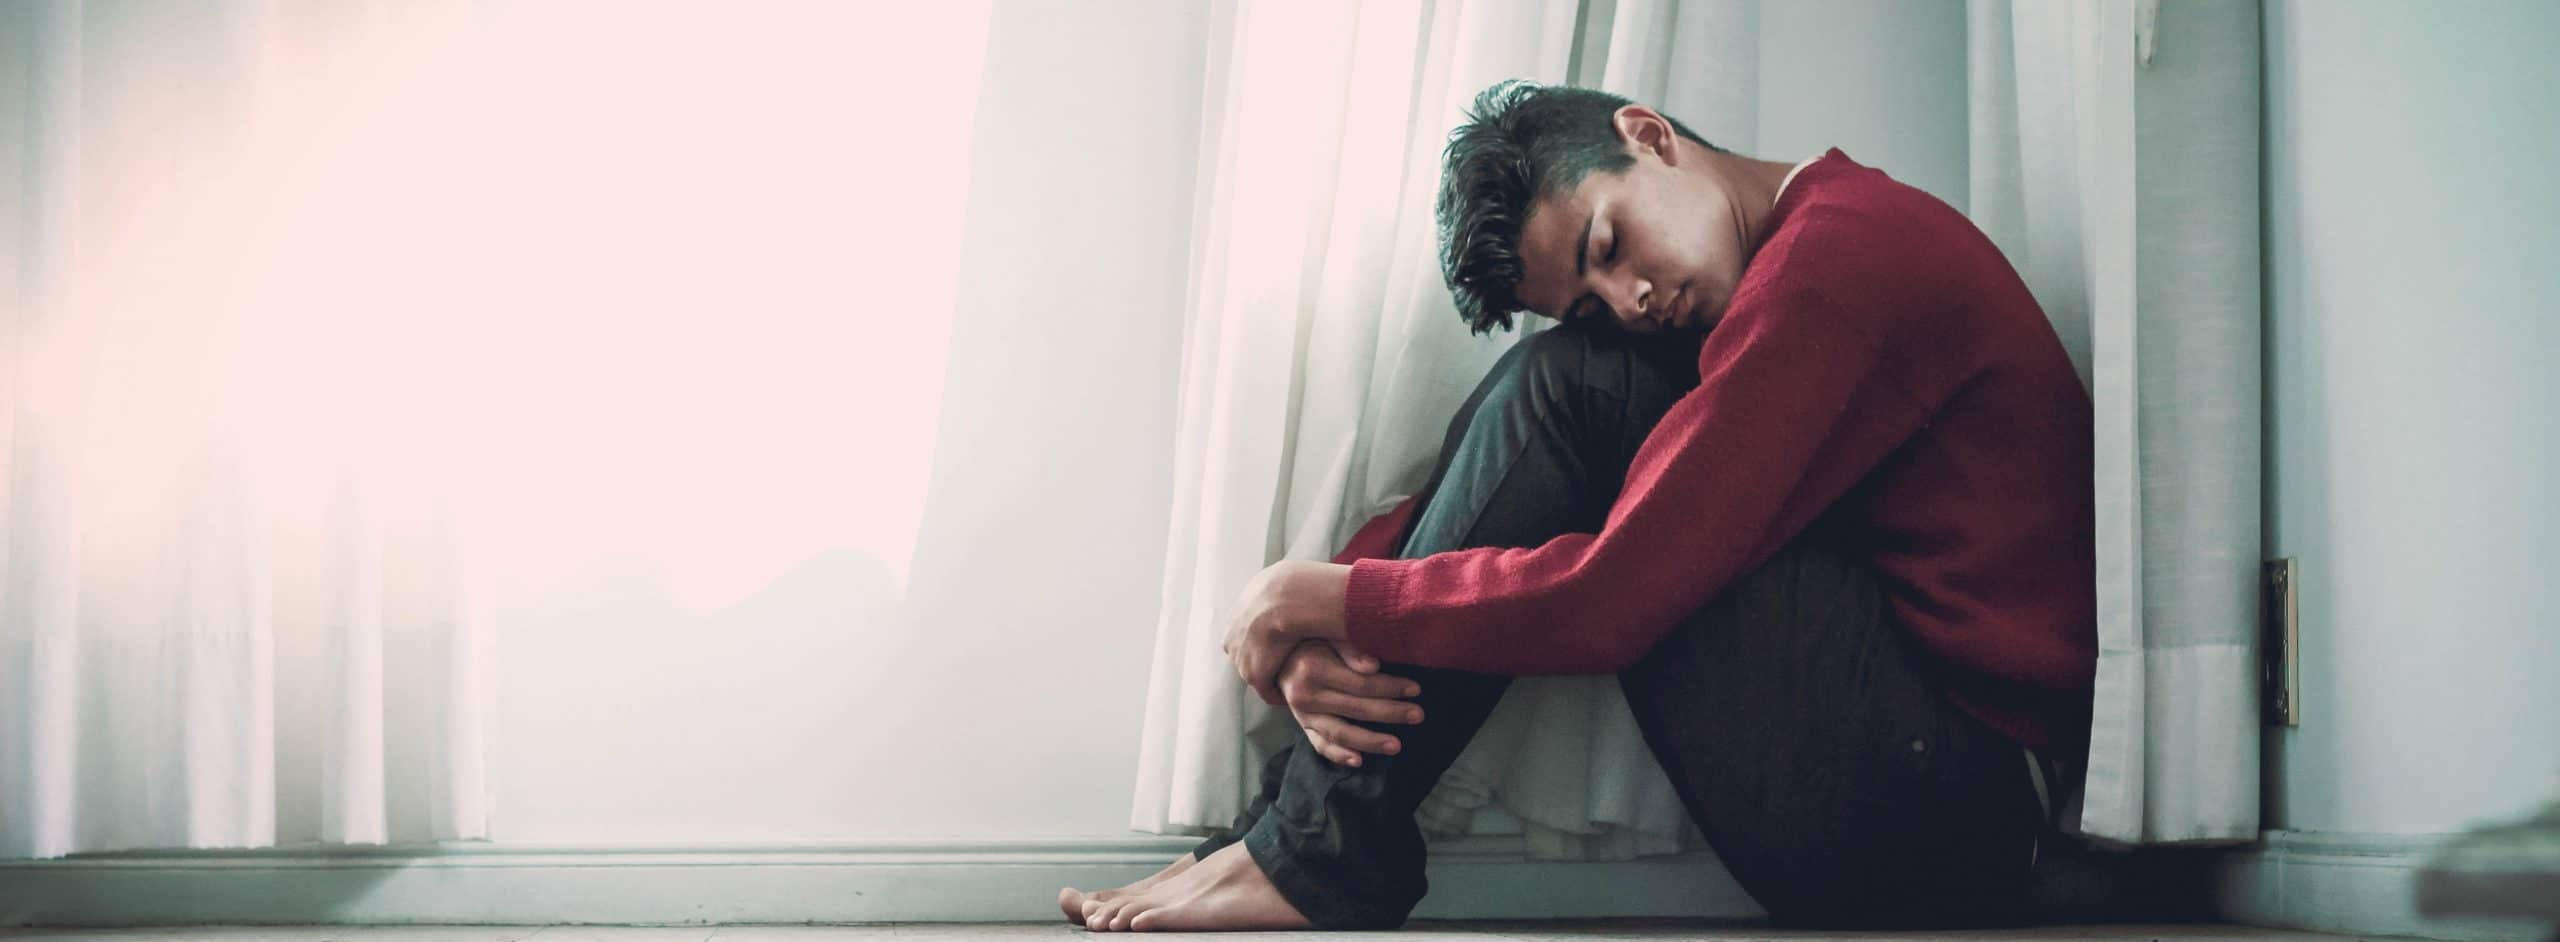 The Effects of Loneliness, Social Isolation, and COVID-19 on our Mental Health